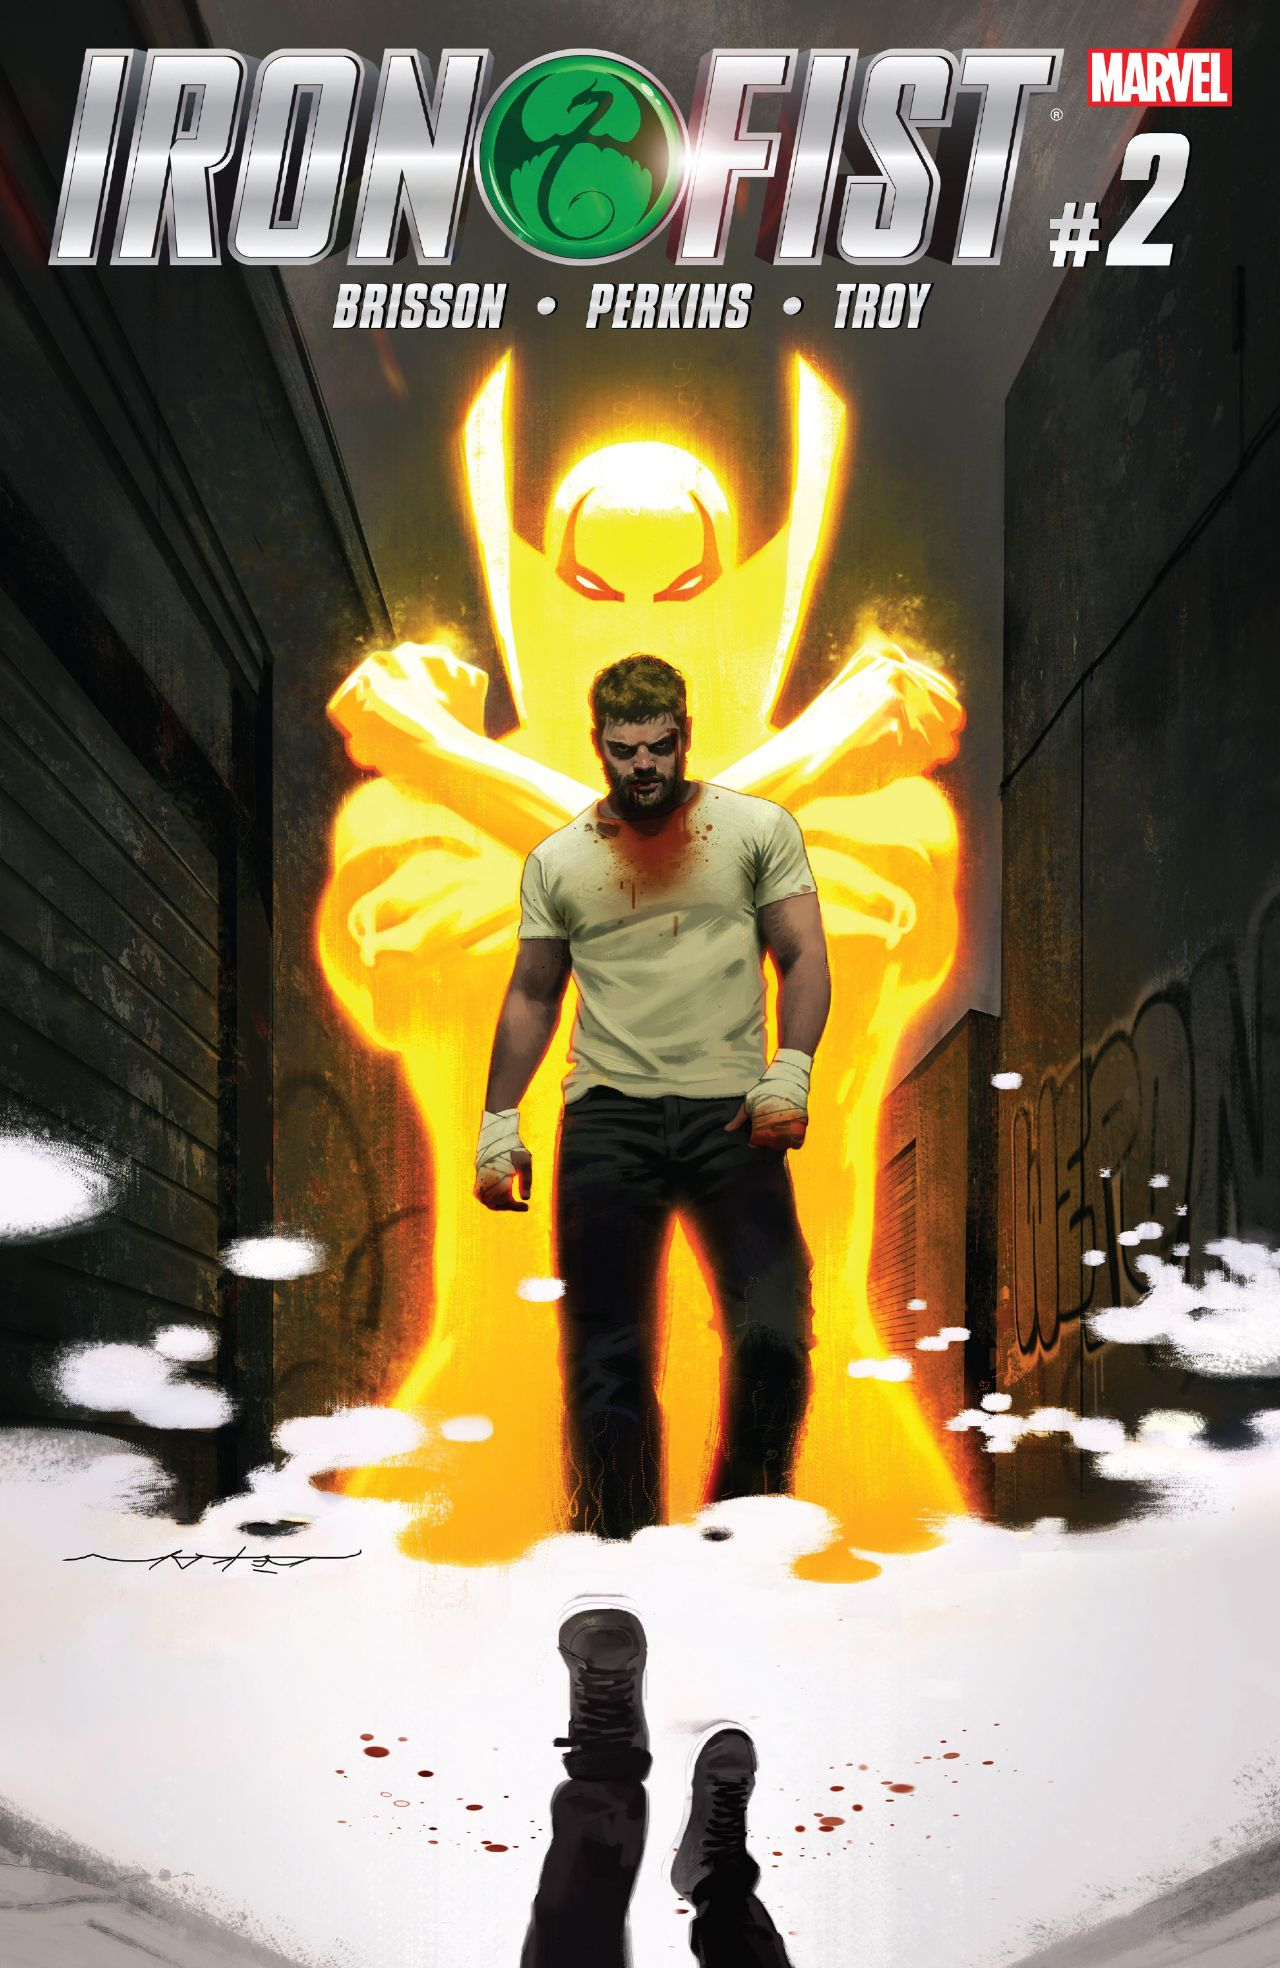 Pmif Int furthermore Finn Jones further Ce moreover Iron Fist Ross Variant furthermore Sdcc Ironfist. on iron fist danny rand